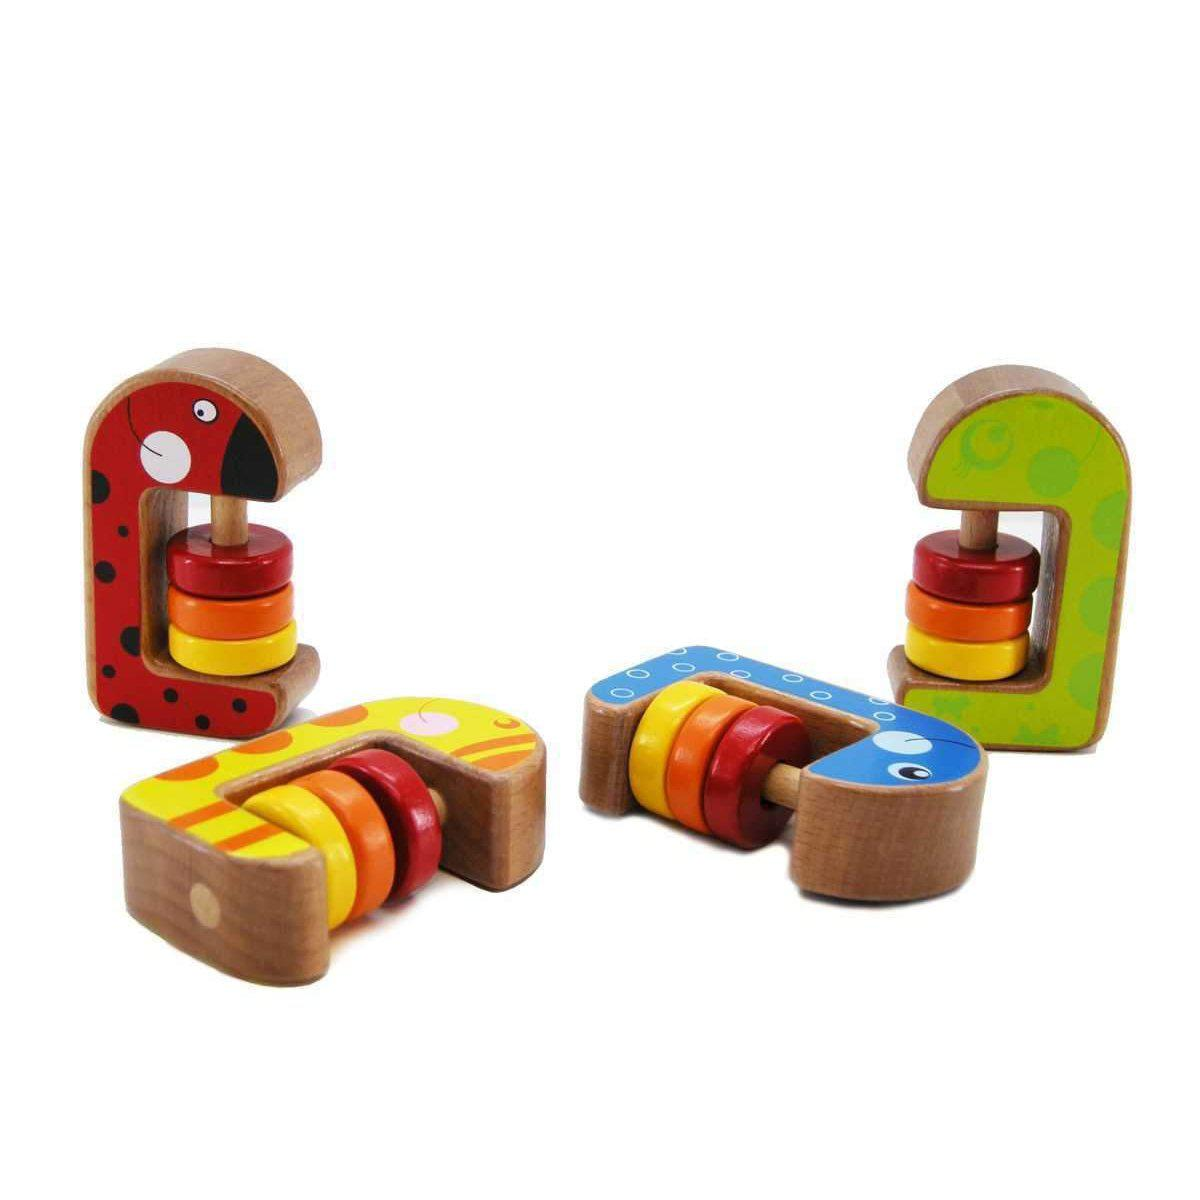 Wooden Abacus Rattle | Wooden World Educational Toys & More